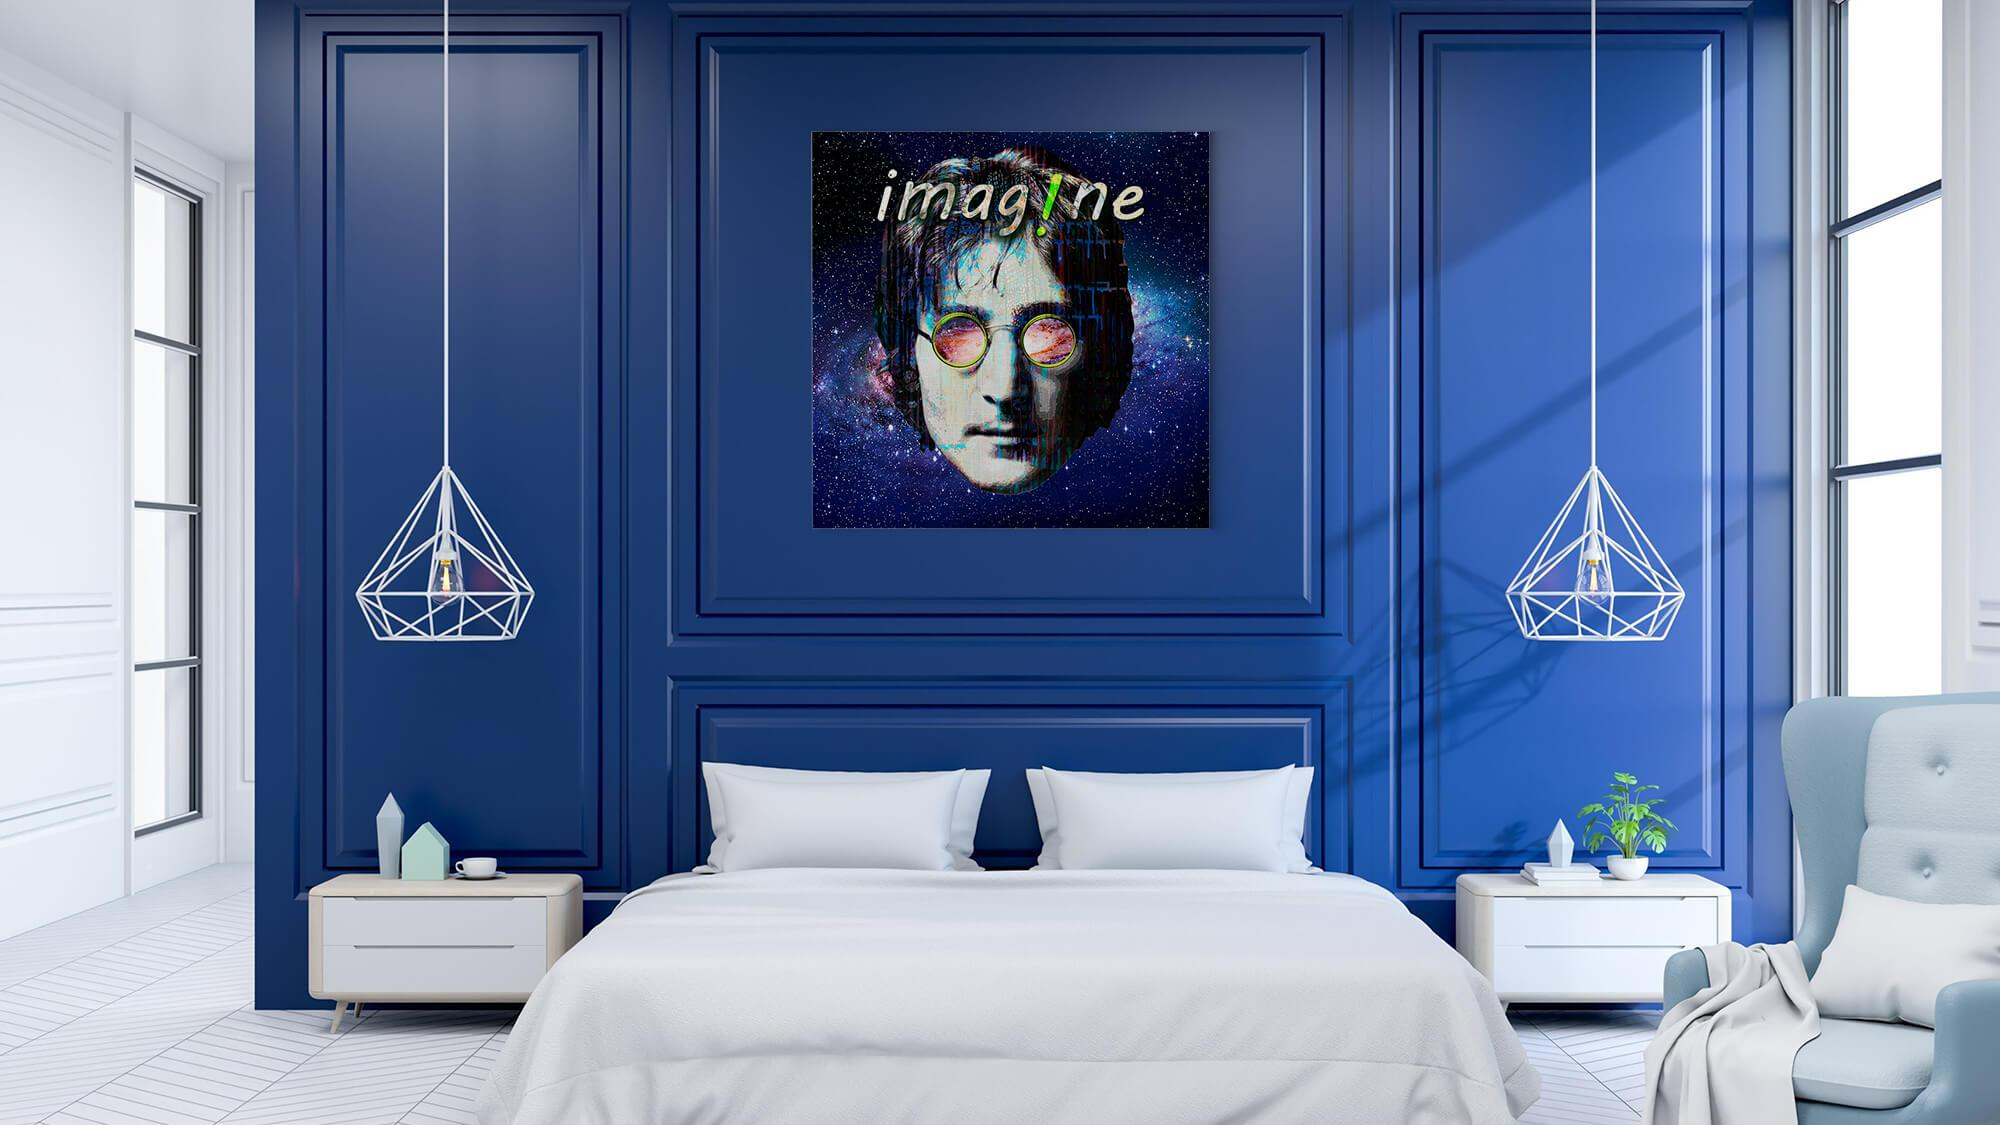 Imagine - canvas-to-the-people - Exclusive Canvas Art Shipped Globally